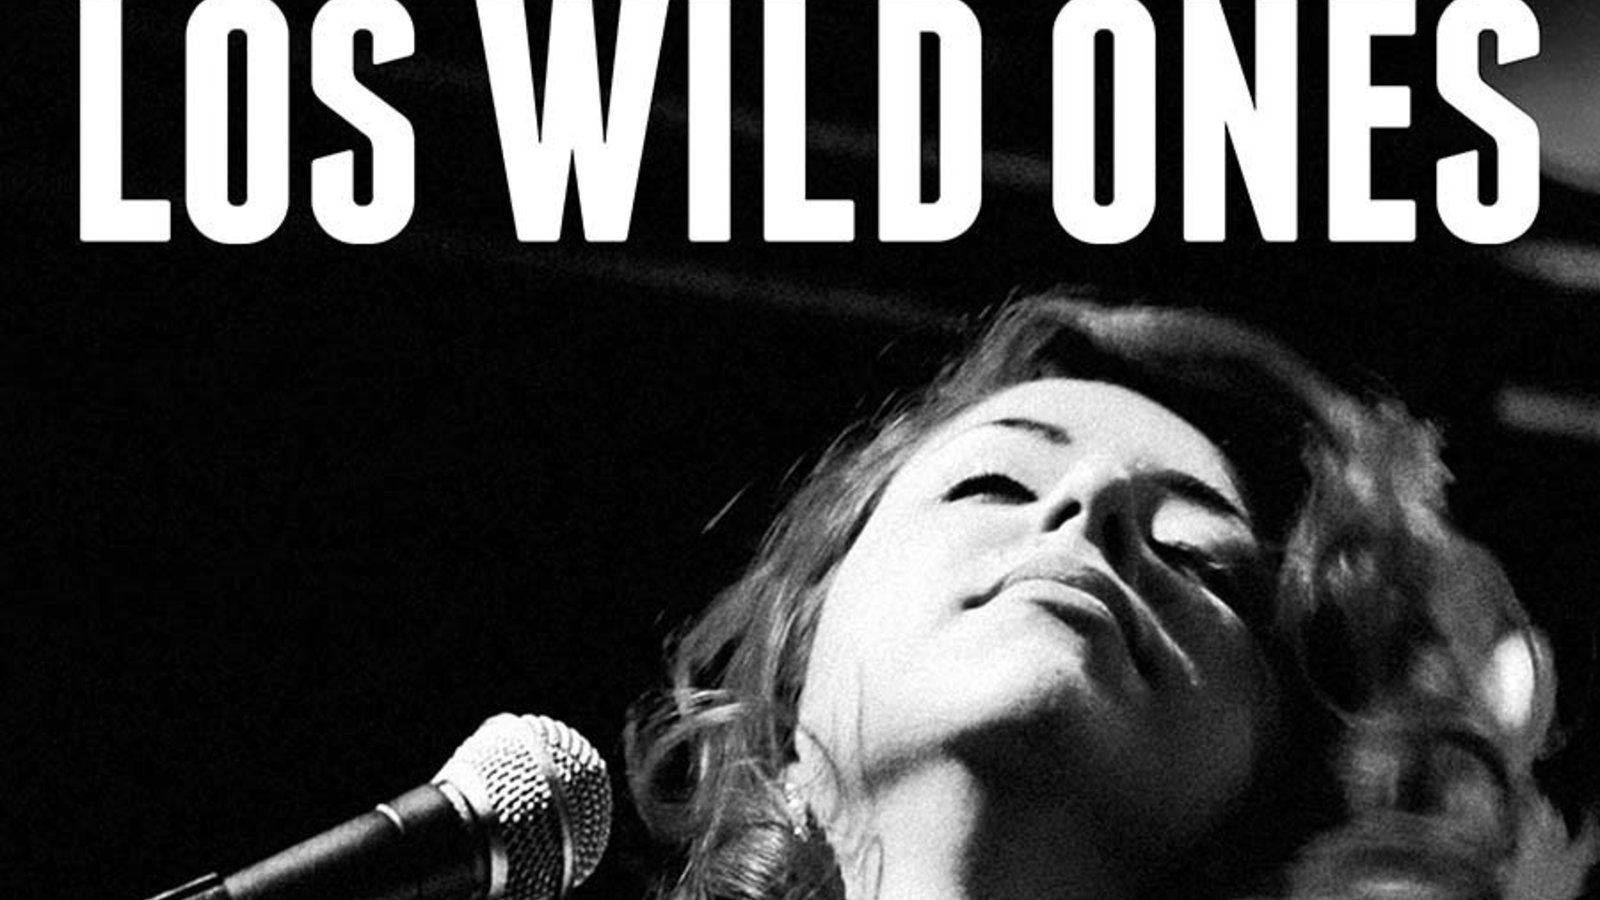 Los Wild Ones - The Musicians of Wild Records